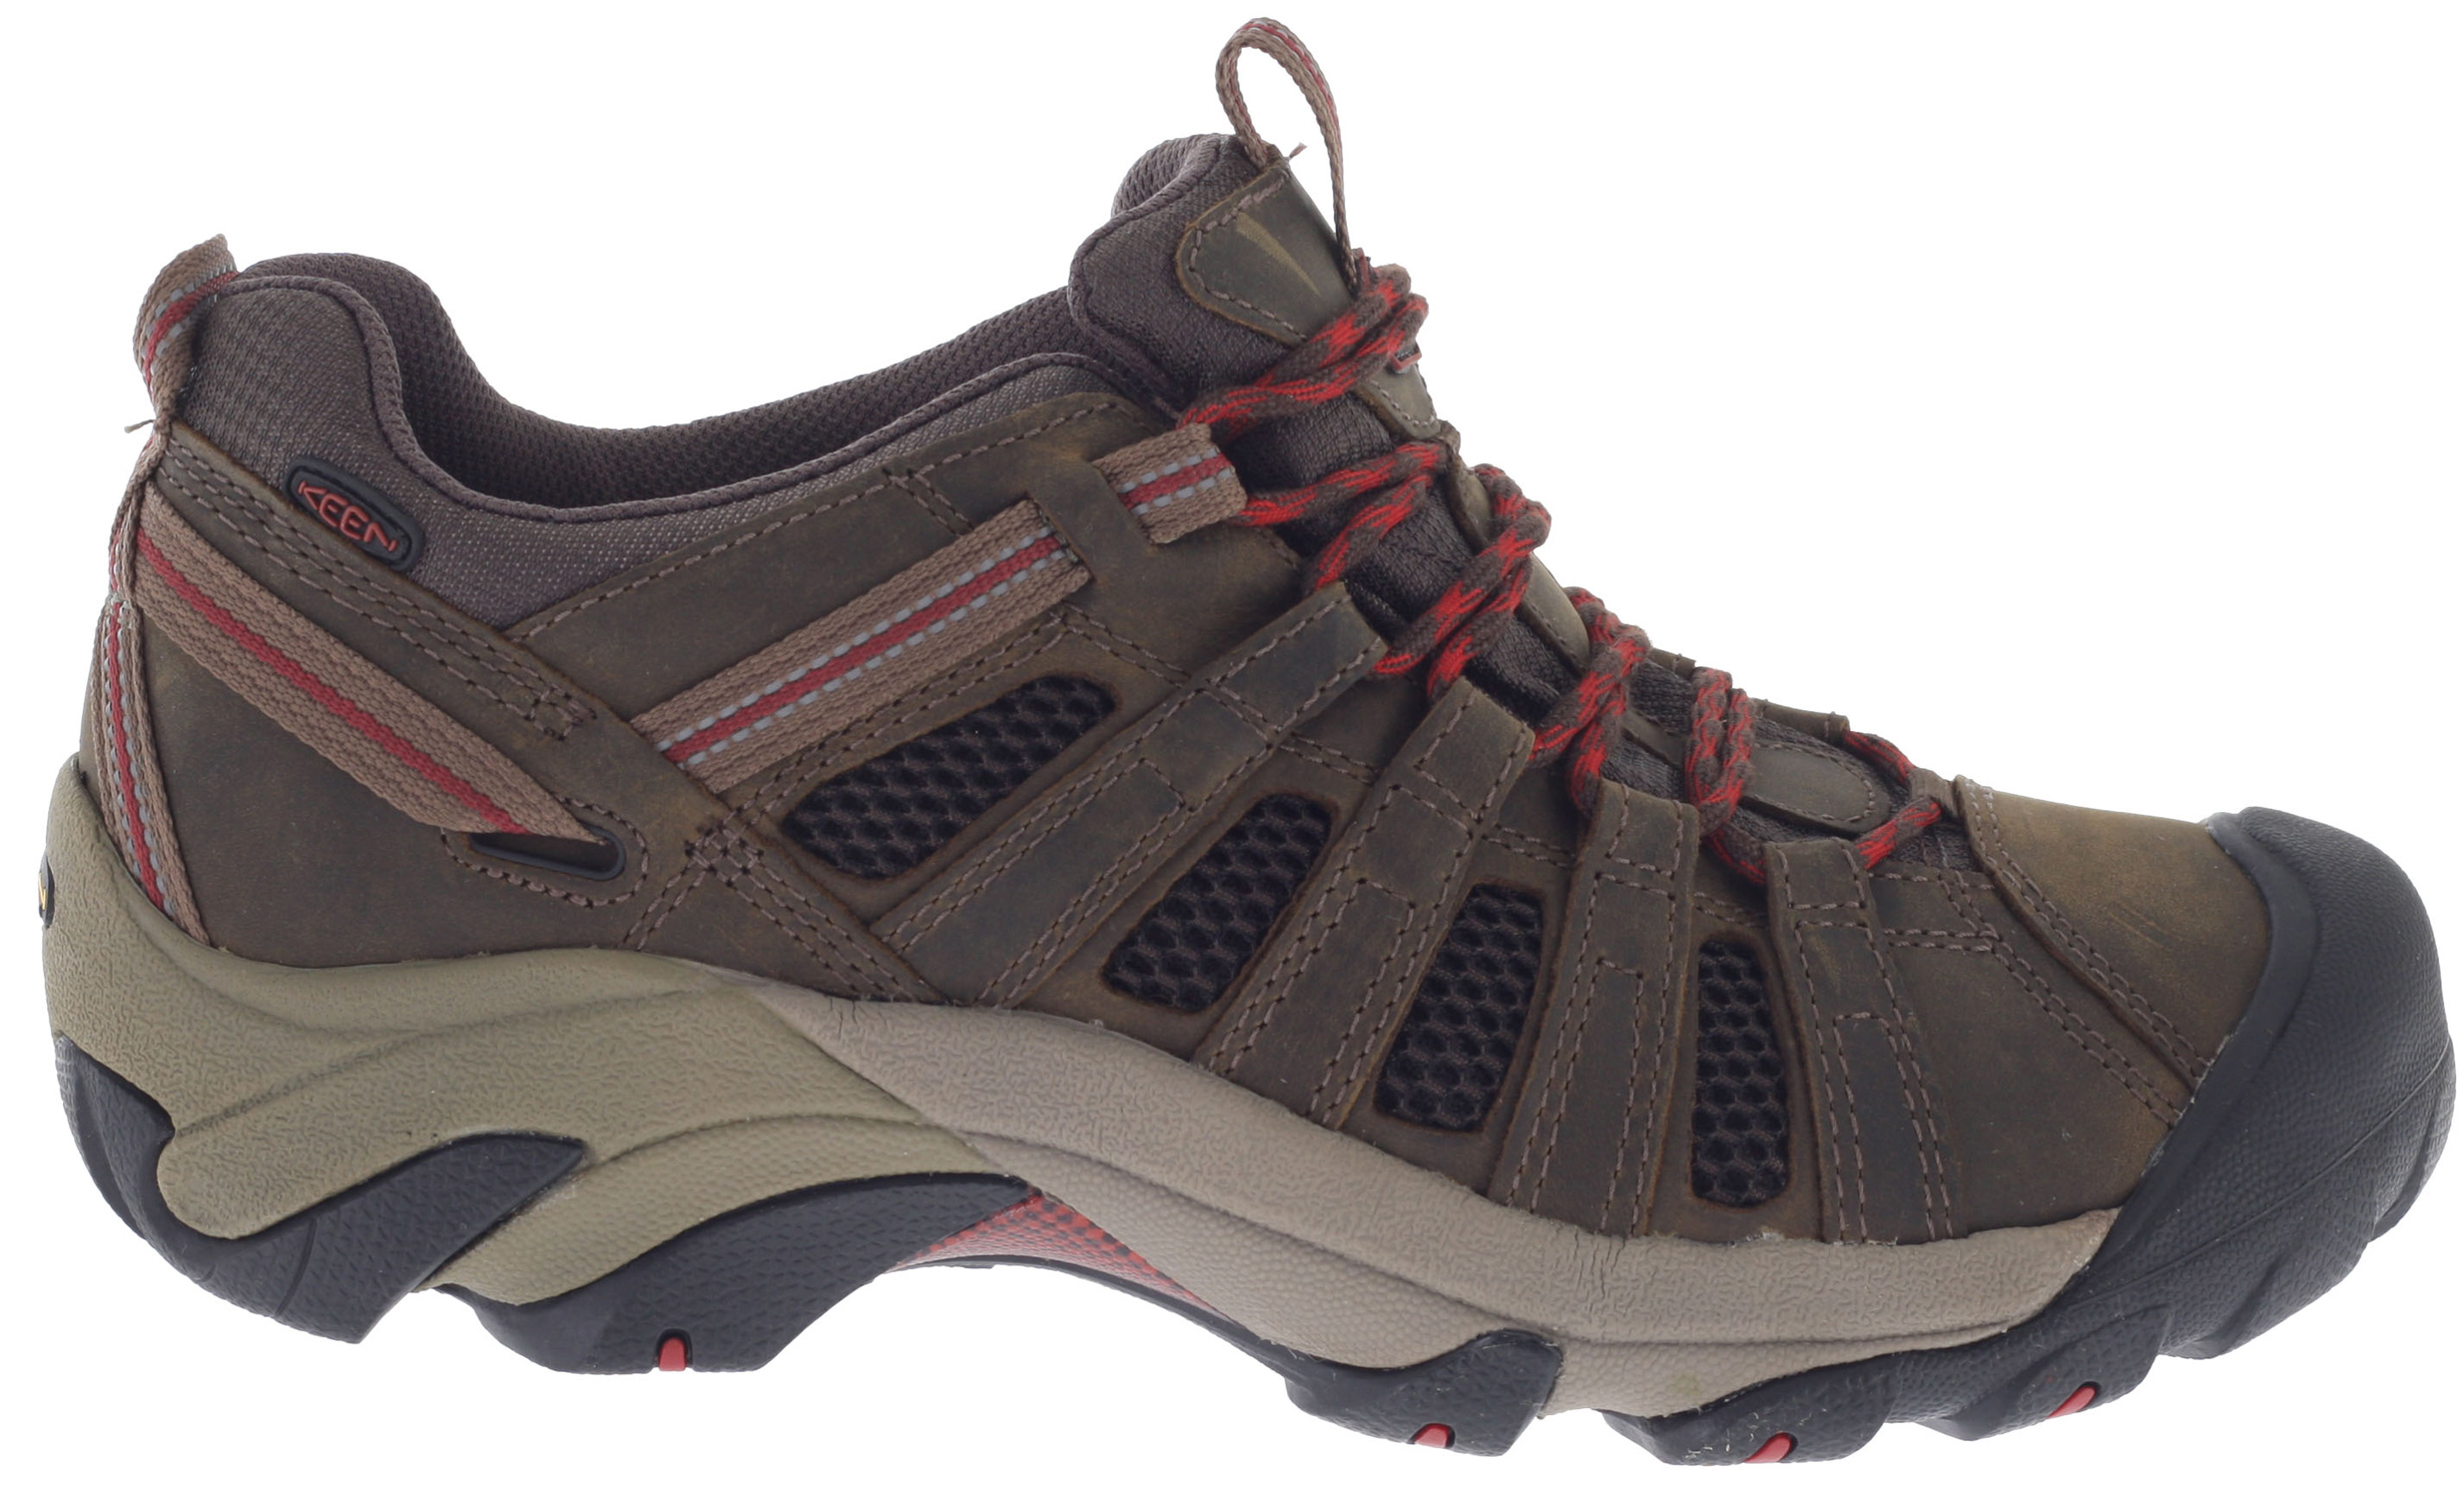 Camp and Hike Keep your cool under pressure with the Voyageur hiking shoe from KEEN. Mesh lining replaces a waterproof barrier for continual airflow. The rugged outsole finds a sure grip on rough terrain with multi-directional lugs. An ESS shank is built in for torsional stability, letting you keep your mind on the task at hand.Key Features of the Keen Voyageur Low Hiking Shoes: Weight: 16.61 oz / 470.885 grams Fit Tip: We find this style runs about a 1/2 size small. Lining: Moisture wicking textile Upper: Leather, webbing and mesh Rubber: Non-marking rubber outsole Activities: Hiking Type: Shoes, Lace Up 4mm multi-directional lugs Dual-density compression molded EVA midsole Non-marking rubber outsole Patented toe protection Removable metatomical Footbed S3 Heel support structure Torsion stability ESS shank Metatomical Footbed Design: This internal support mechanism is anatomically engineered to provide excellent arch support and cradle the natural contours of the foot. - $64.95